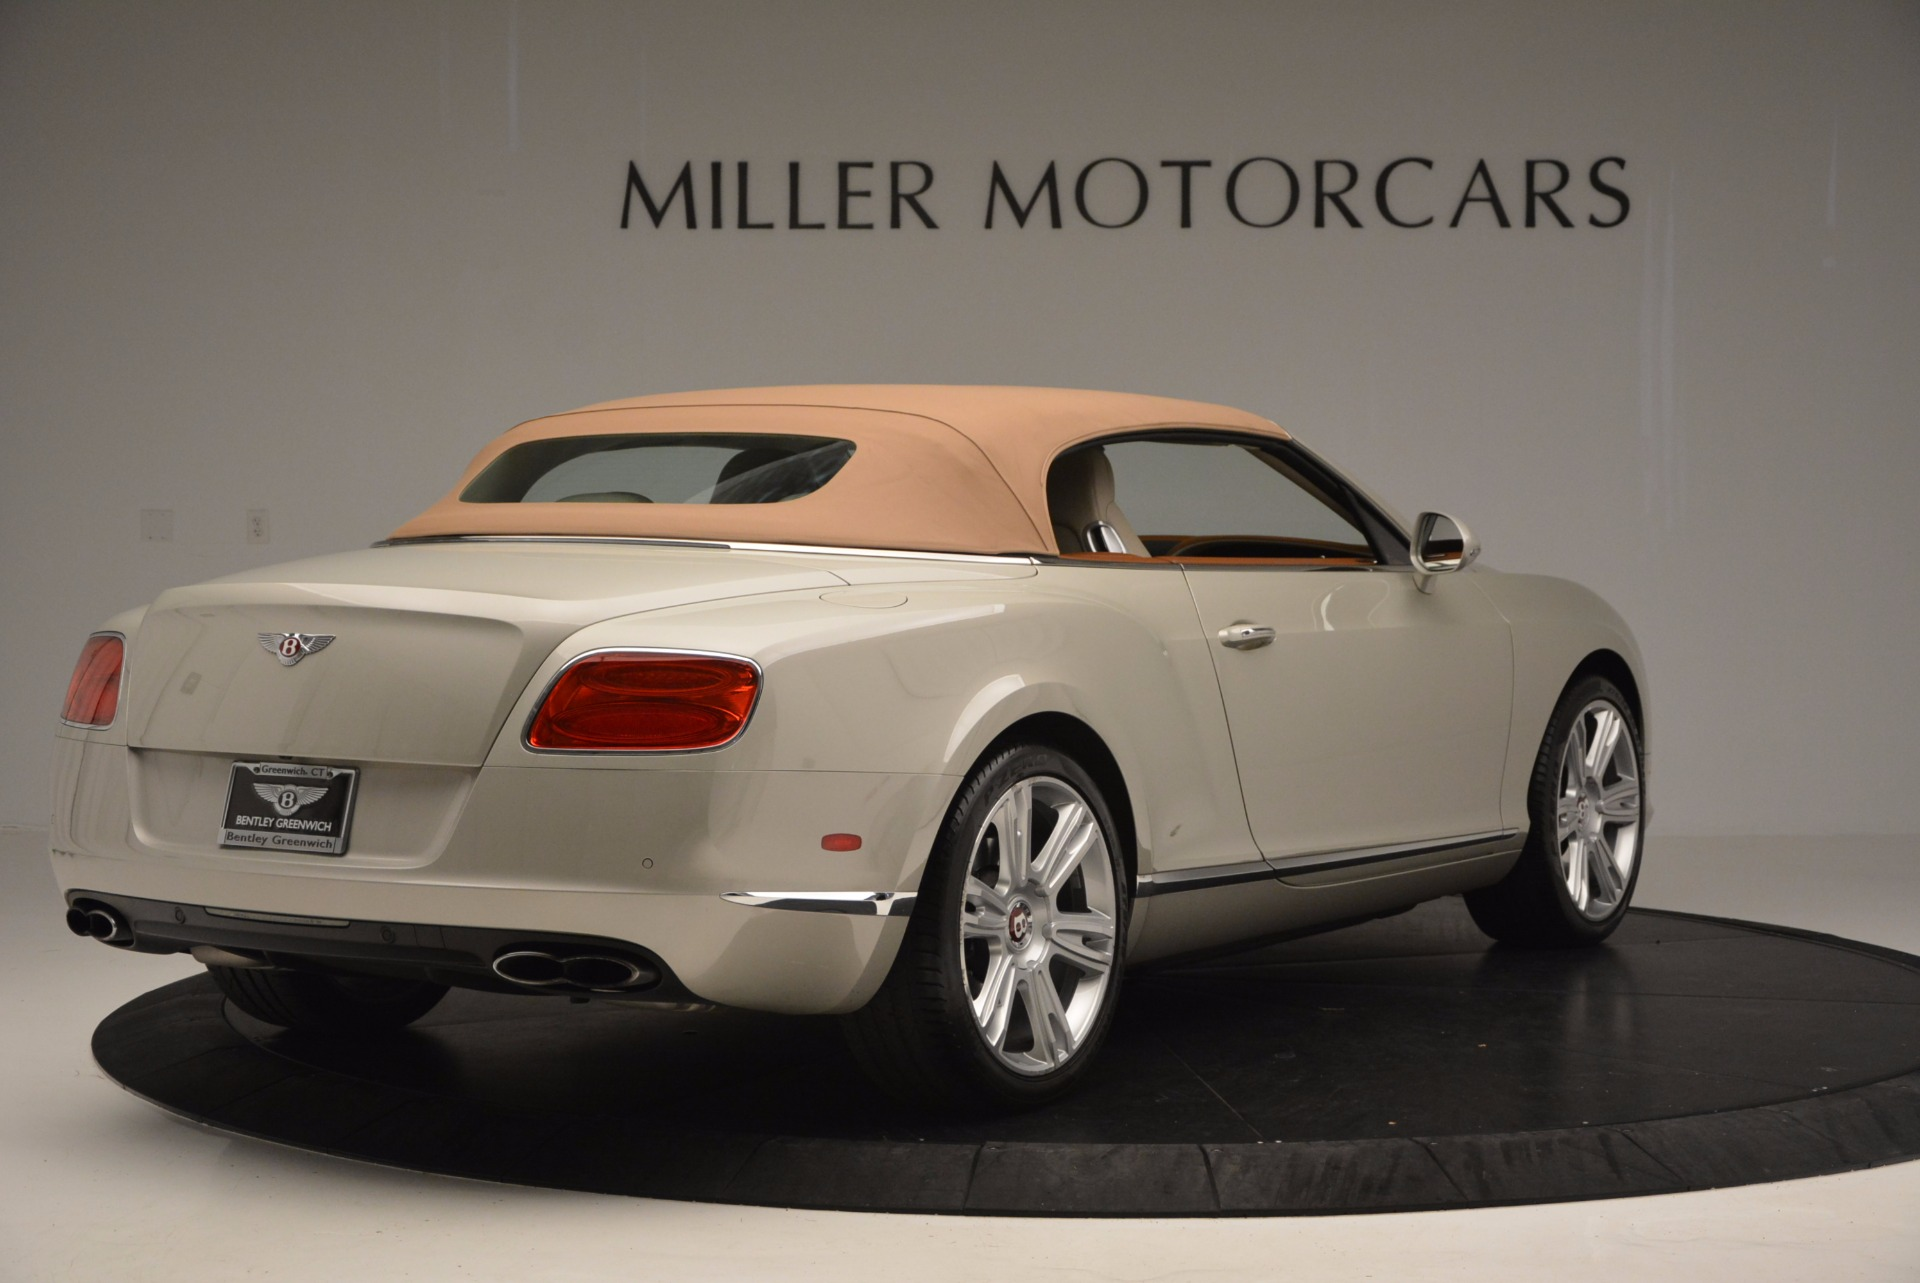 Used 2013 Bentley Continental GTC V8  For Sale In Greenwich, CT. Alfa Romeo of Greenwich, 7108 675_p20